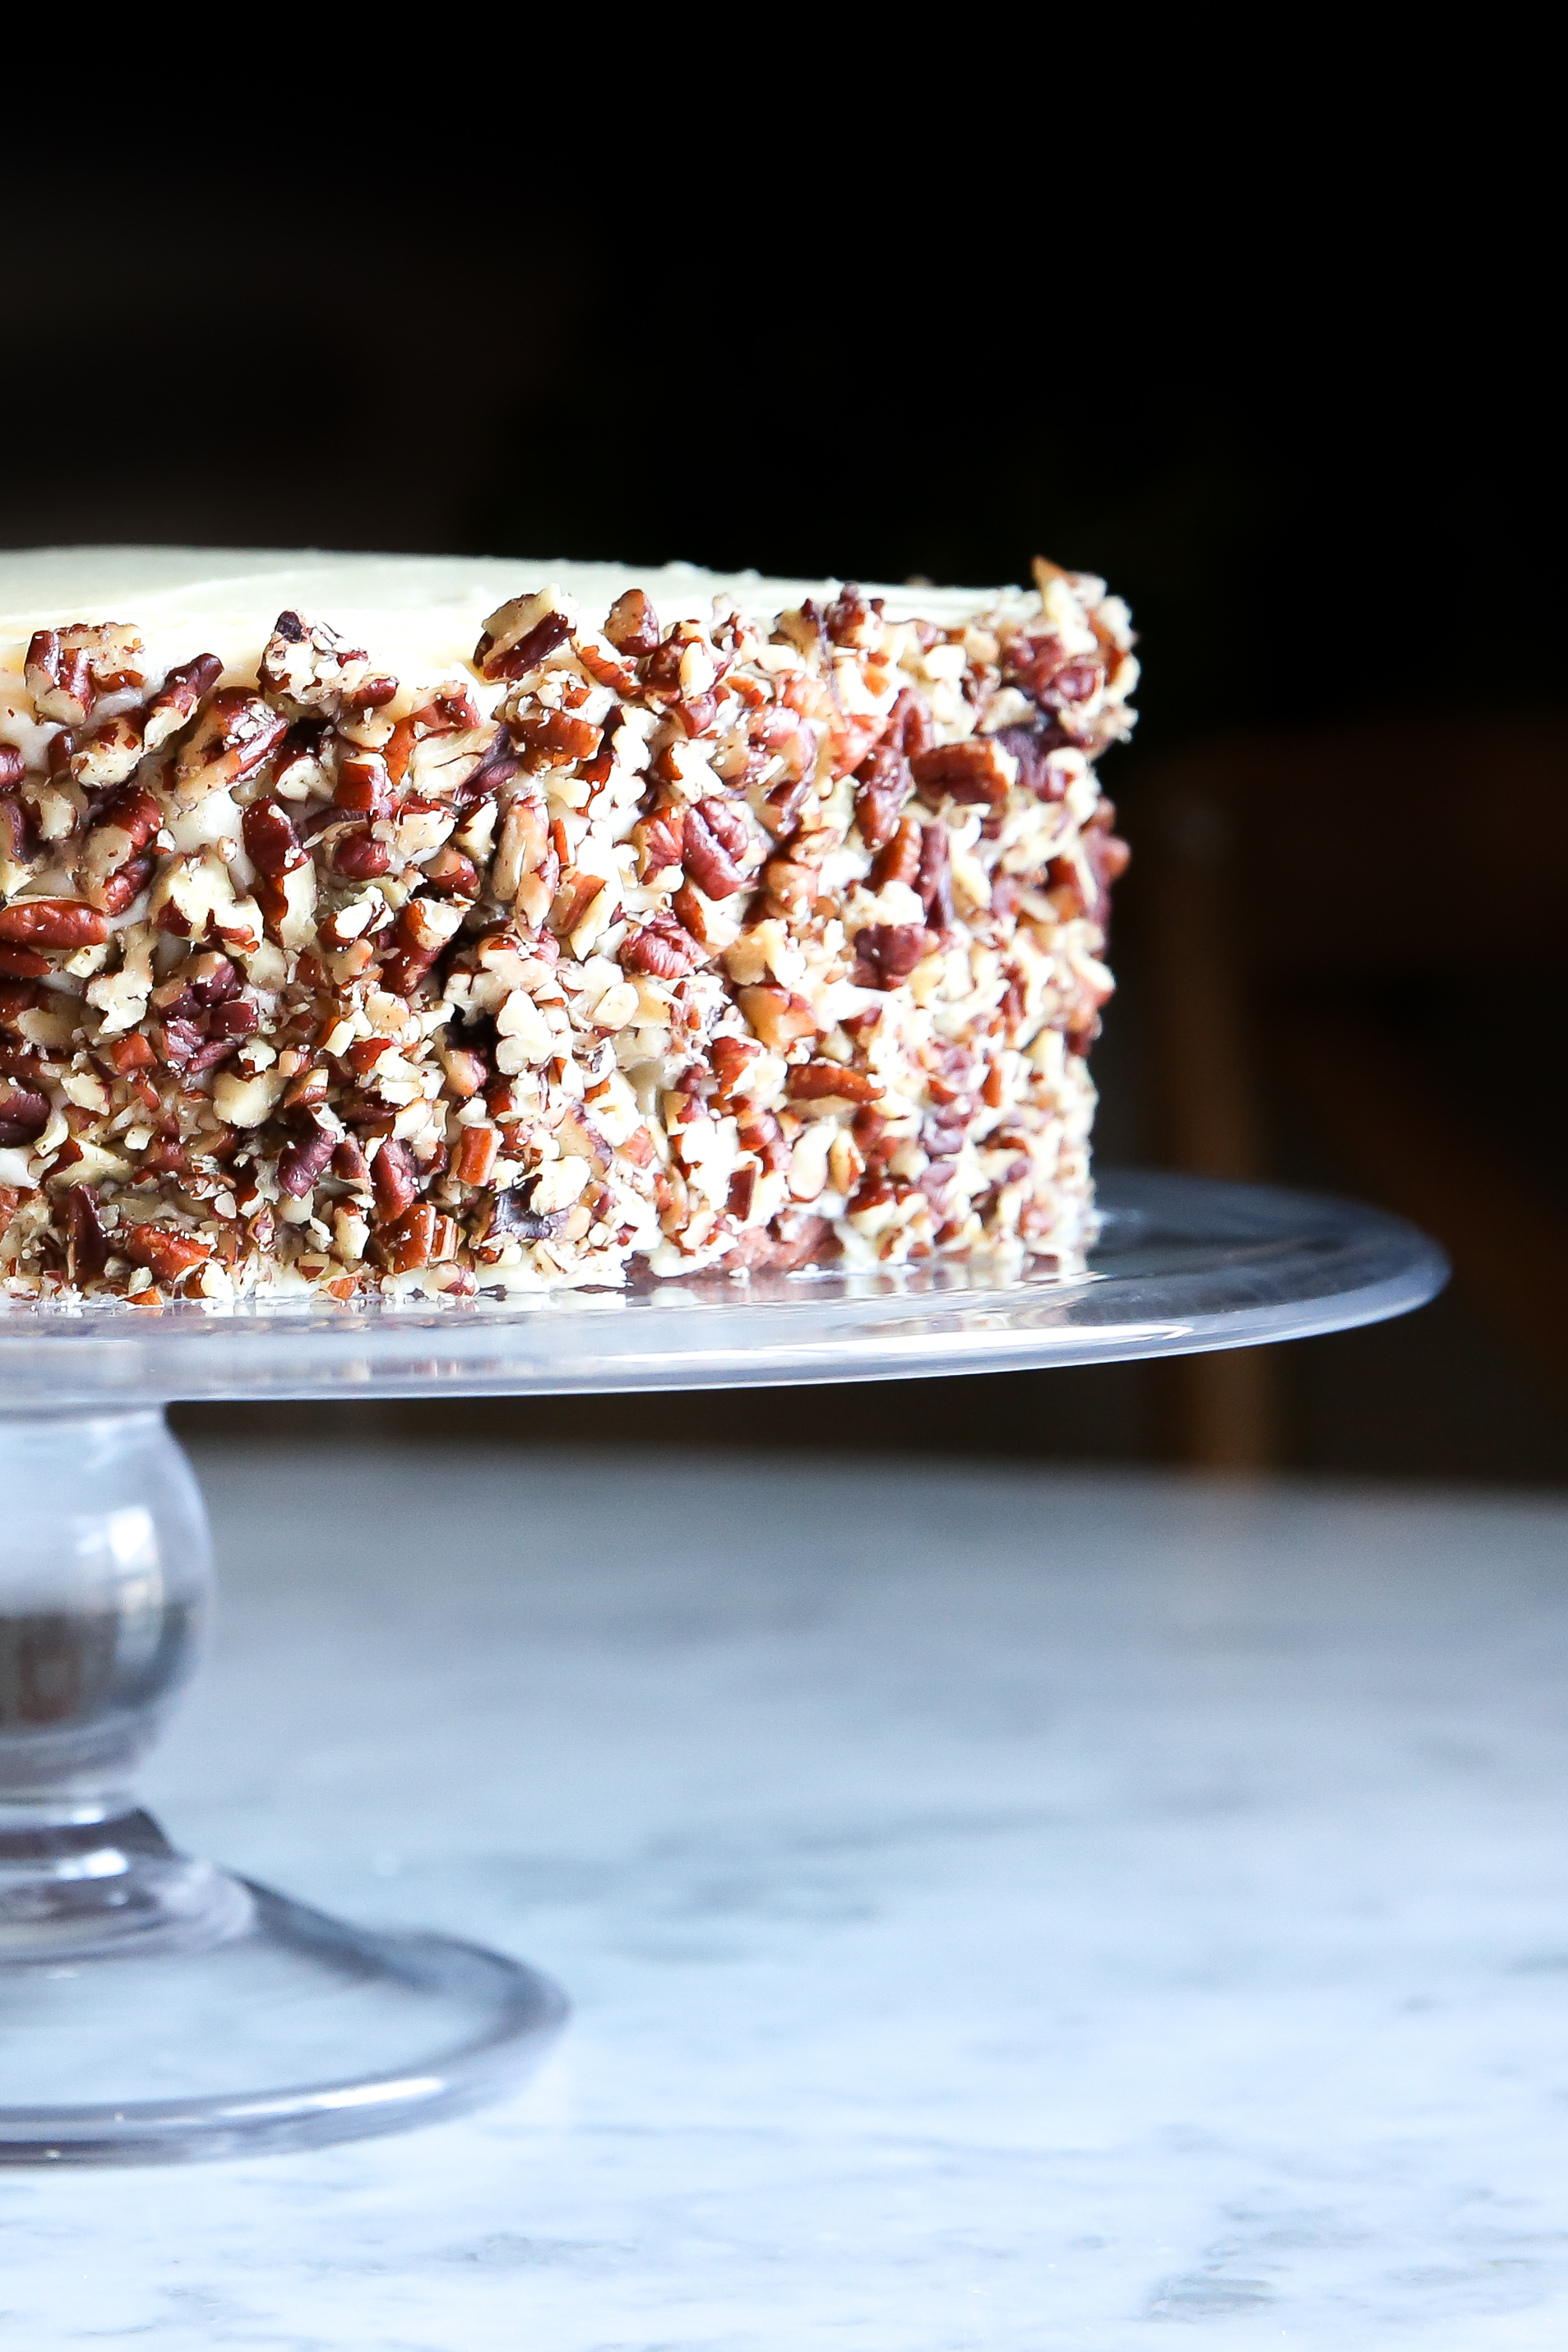 Red Velvet Cake with Cream Cheese Frosting by Judy Kim